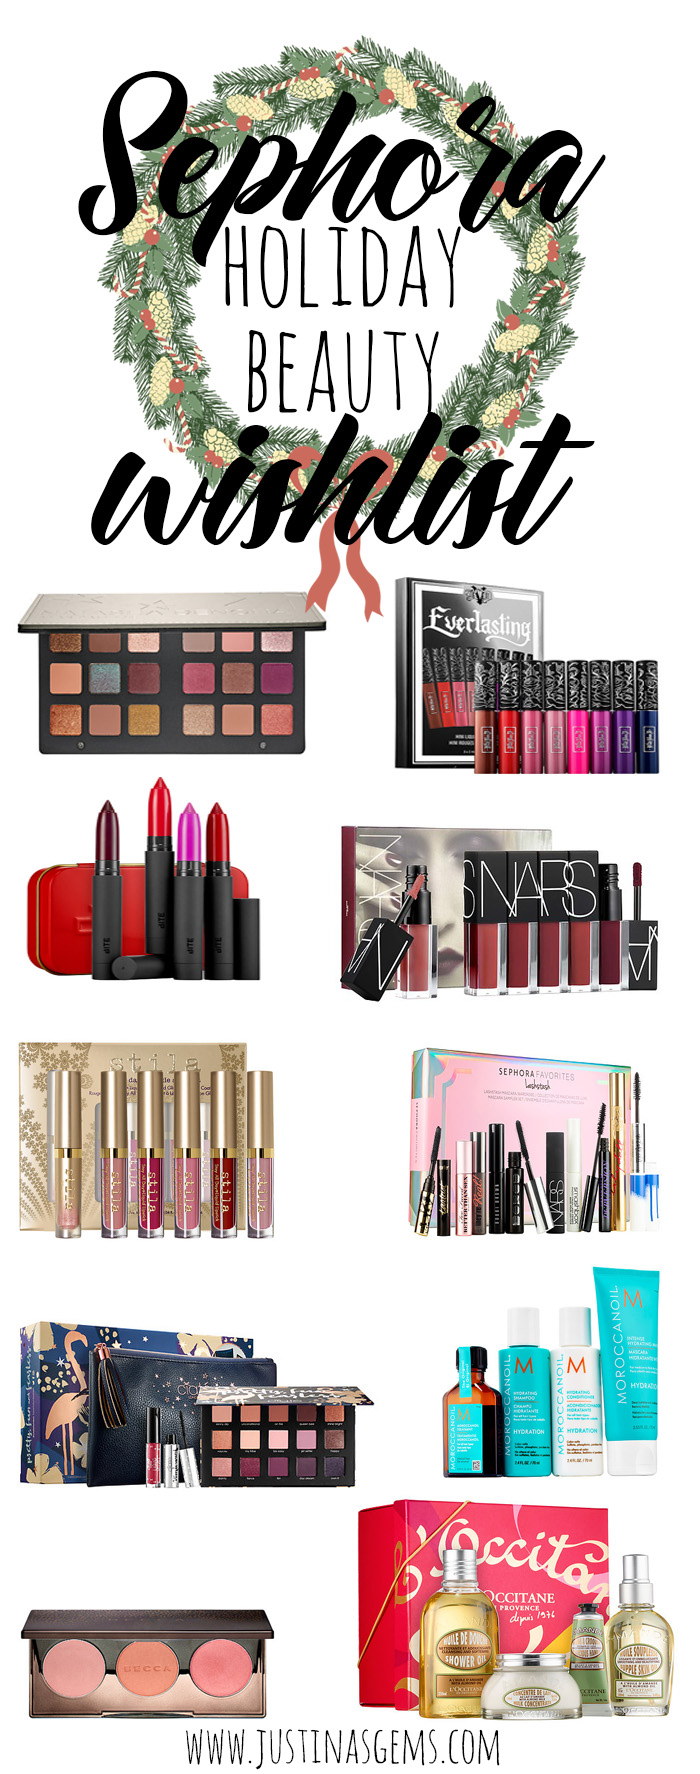 sephora-holiday-beauty-wishlist